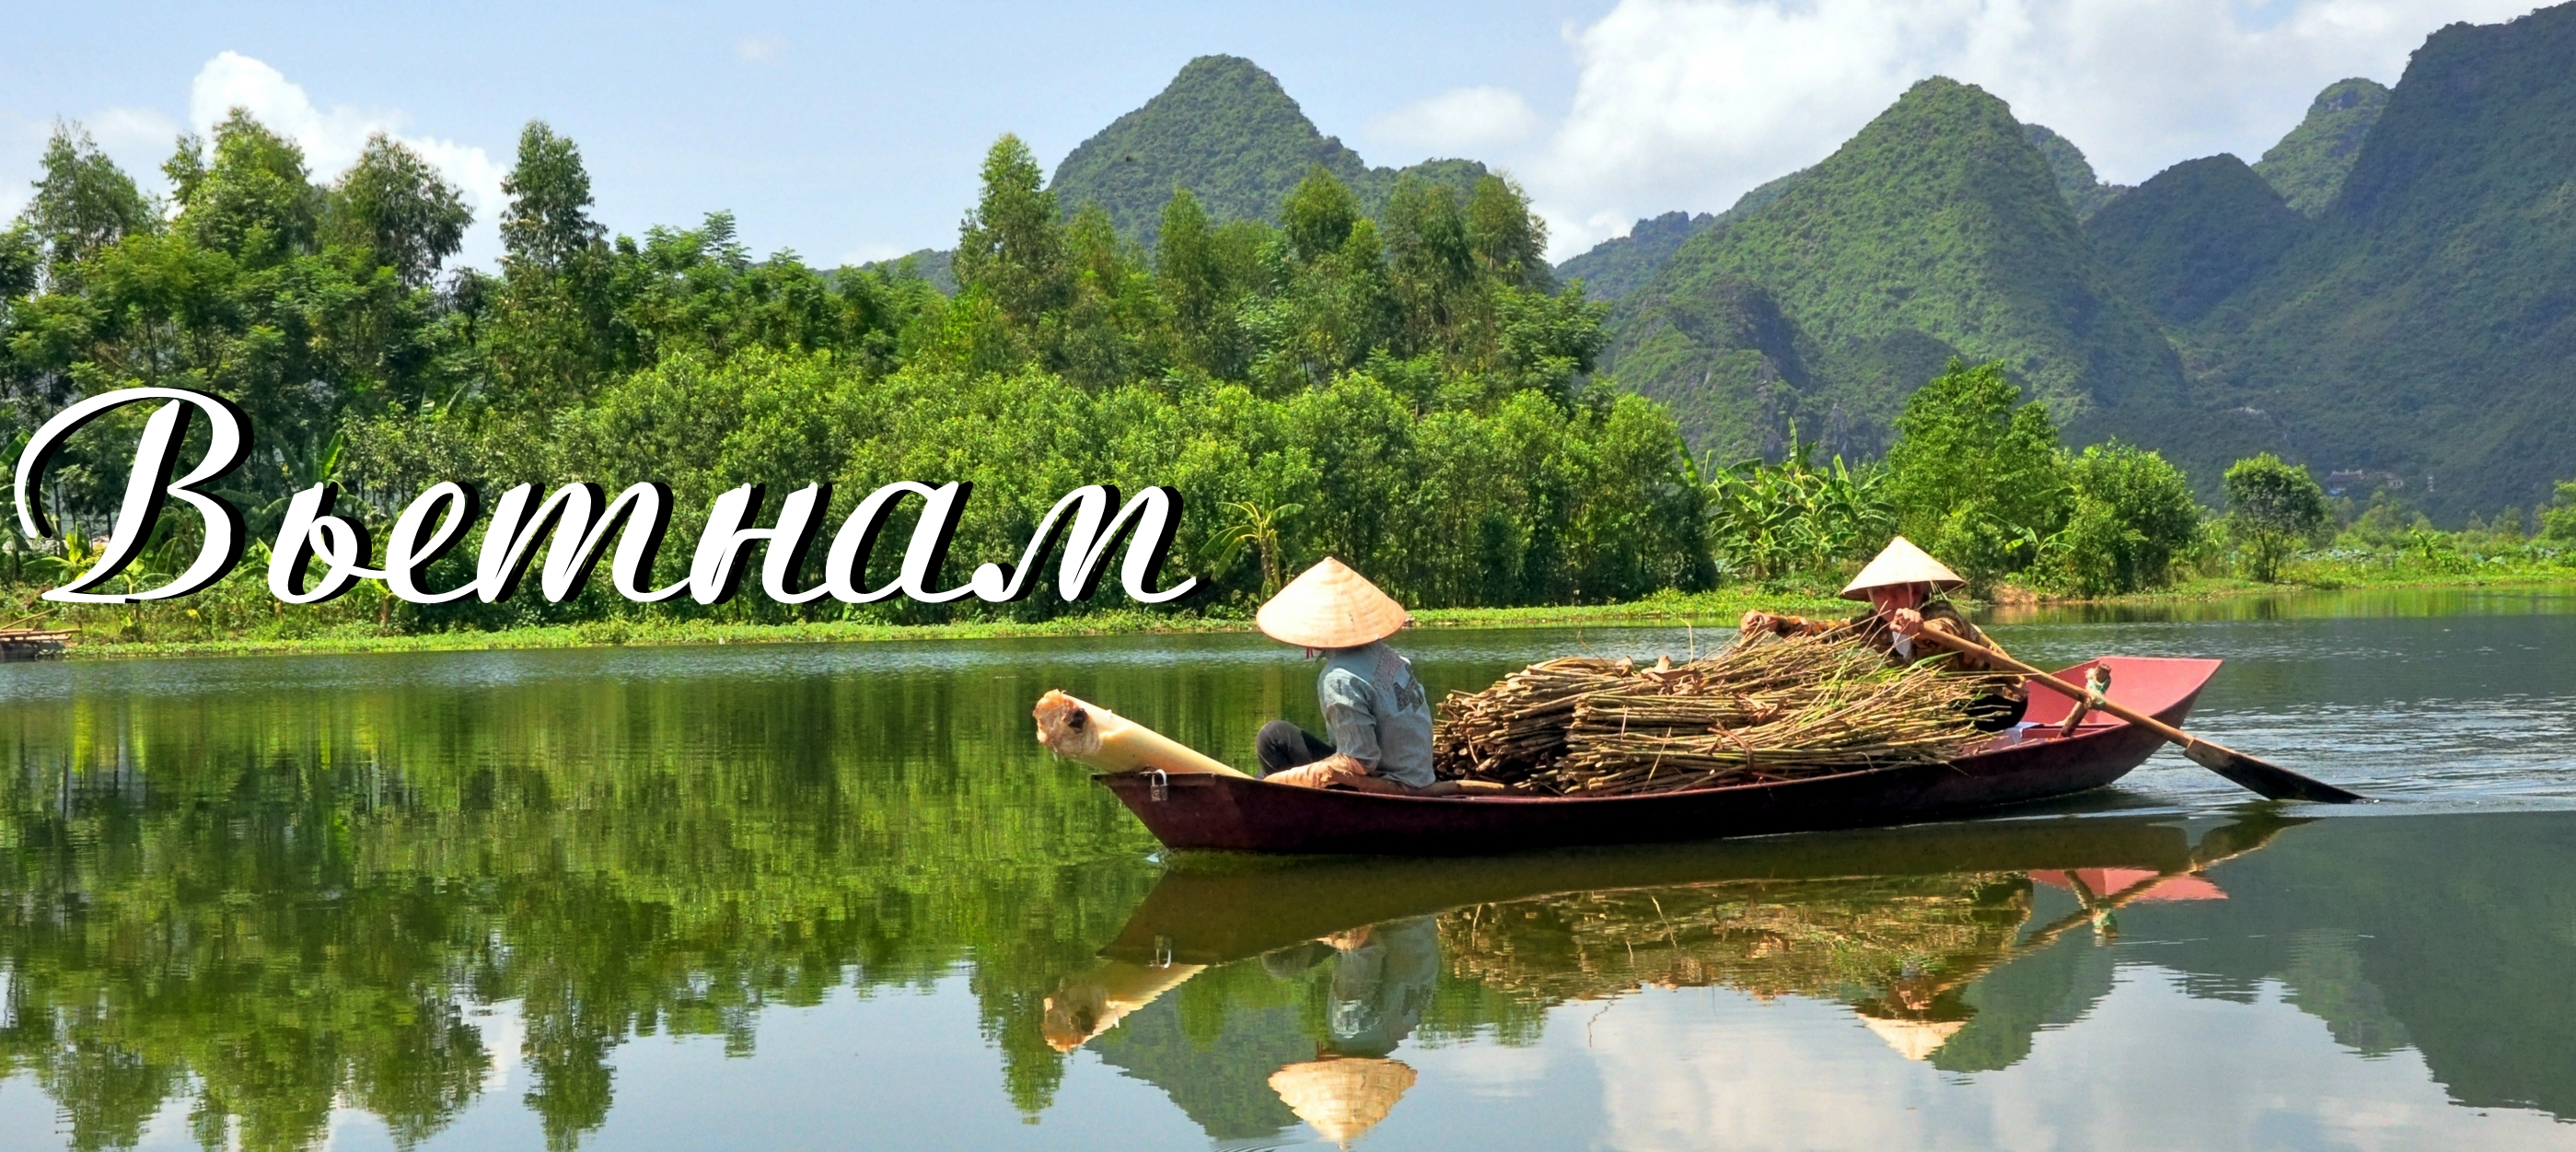 BoatWomen-of-Vietnam-dreamstime